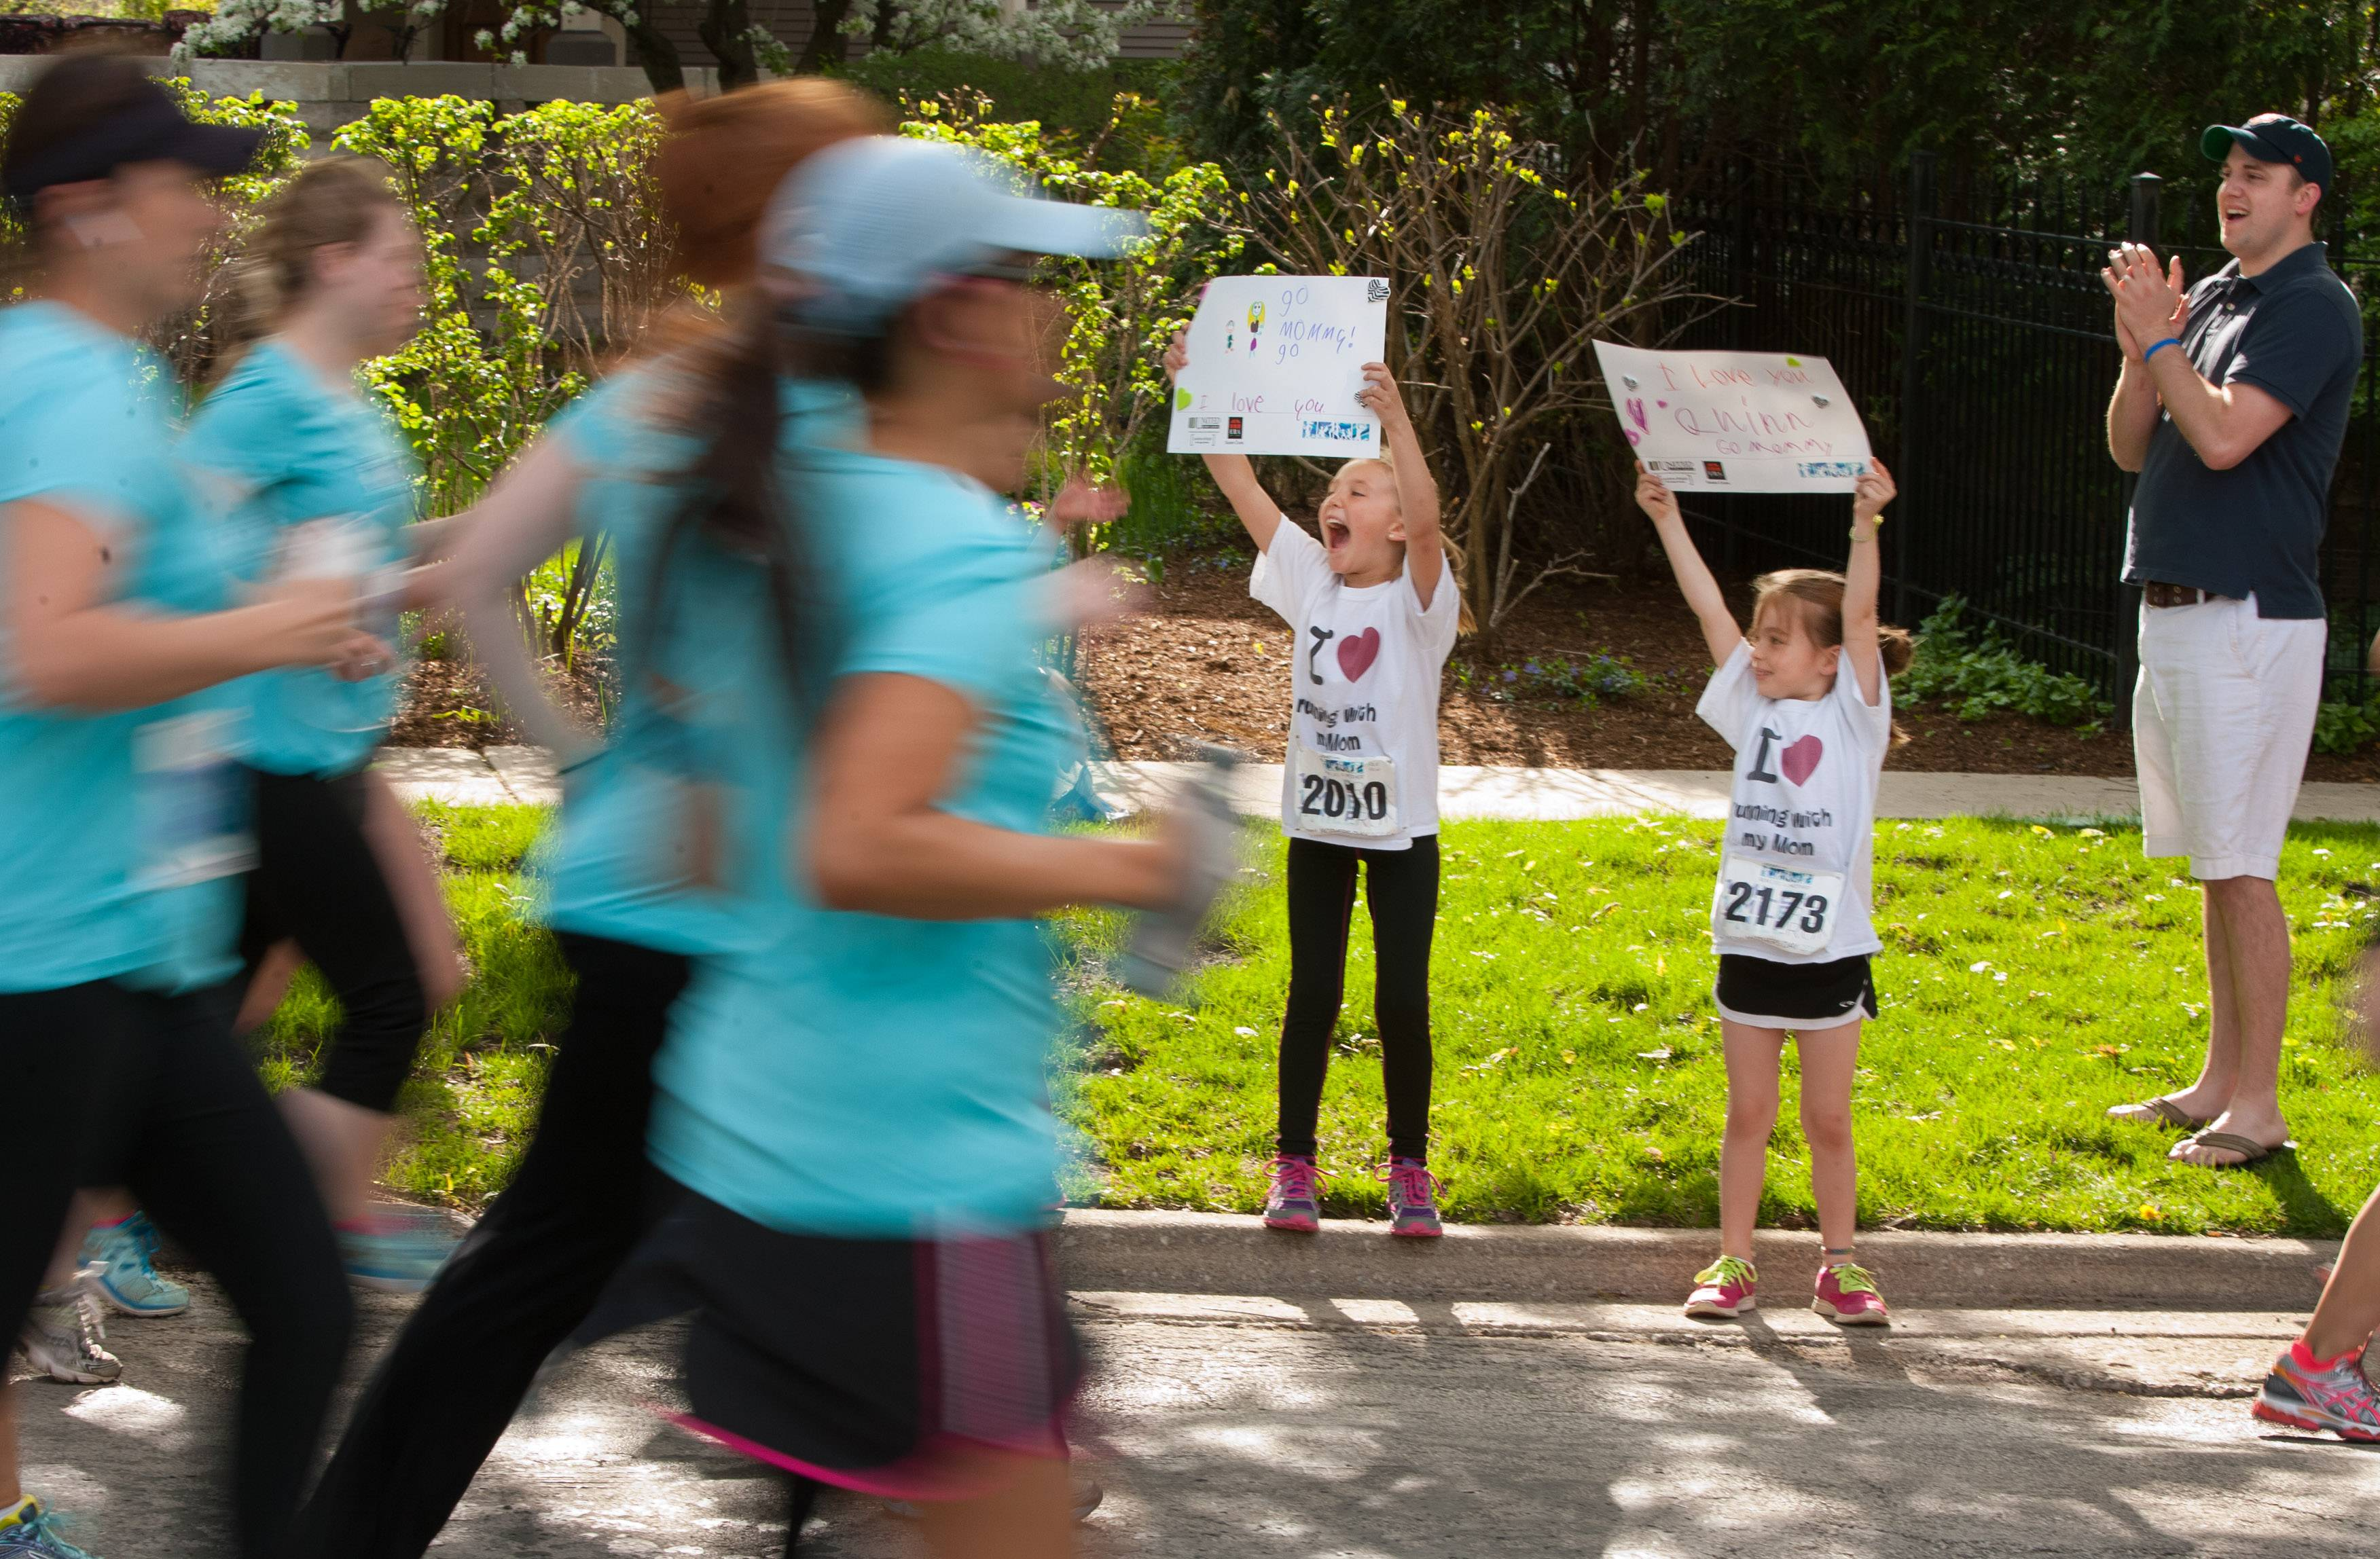 Kylie Frigo, 7, of Naperville, and Quinn Shulski, 6, of Lake in the Hills cheer on their mothers during Sunday's Run Like a Mother 5K race in Hinsdale. The women-only run raises money to enrich the lives of children with Angelman syndrome.